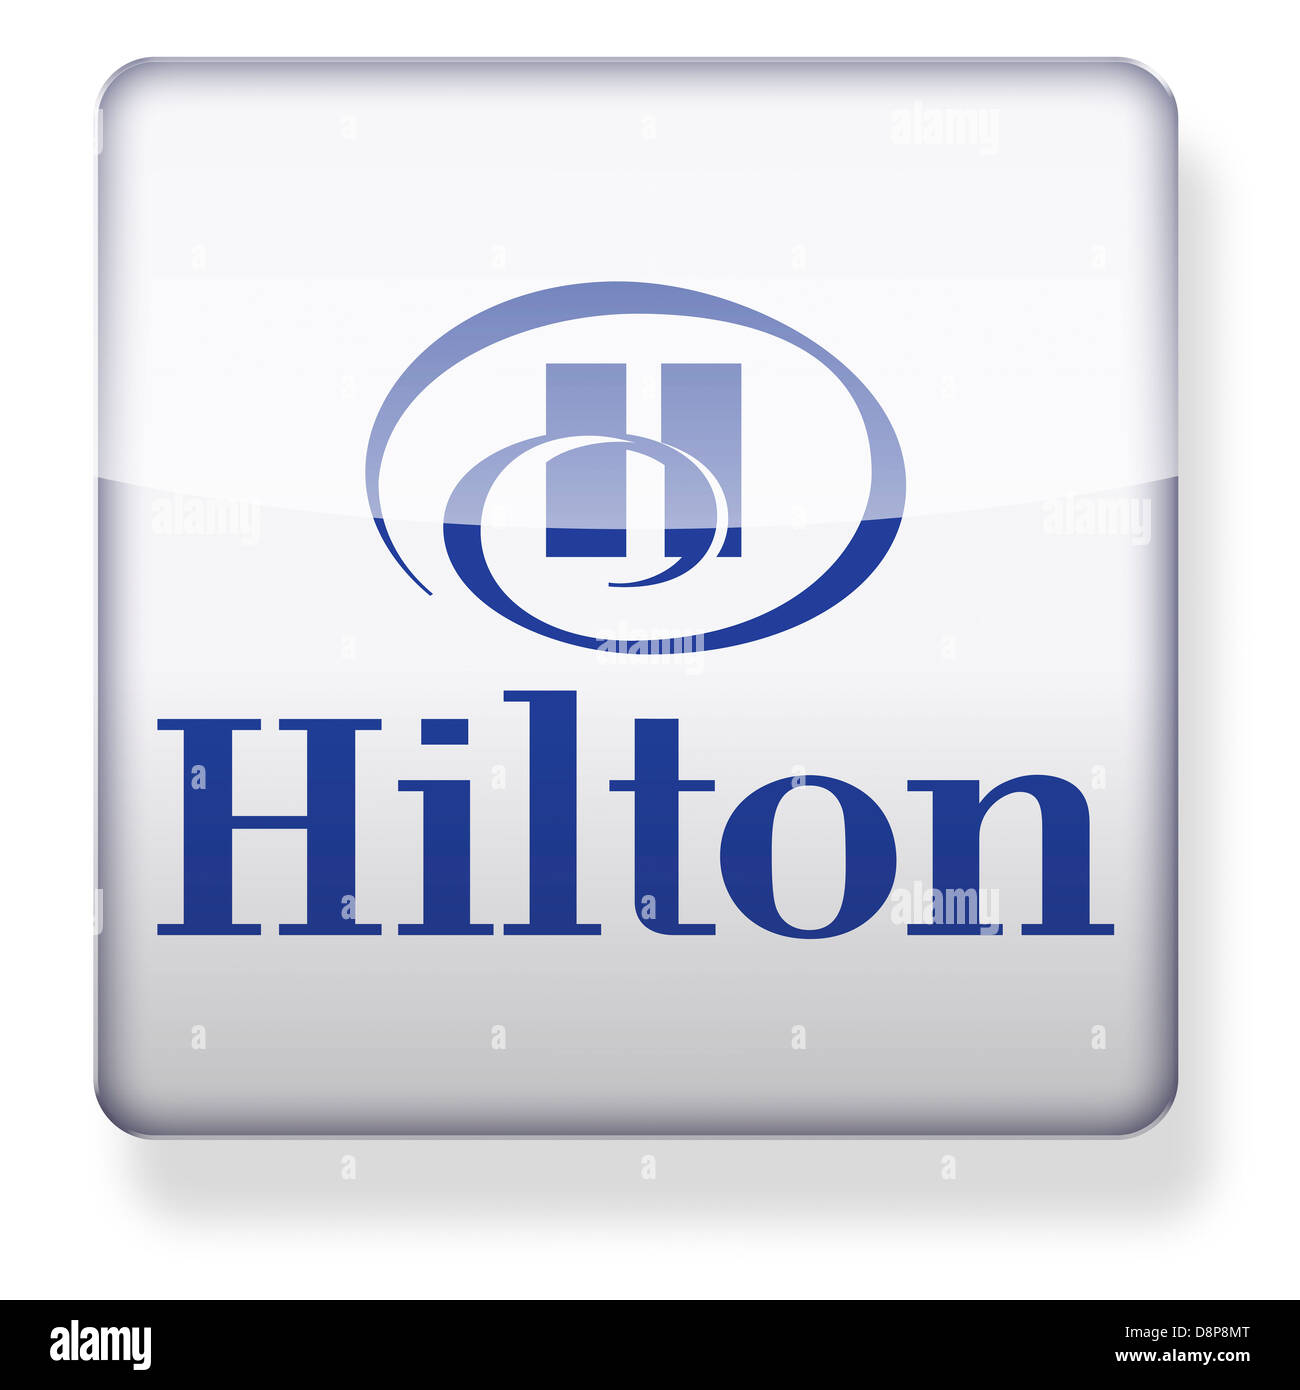 hilton hotels logo as an app icon clipping path included